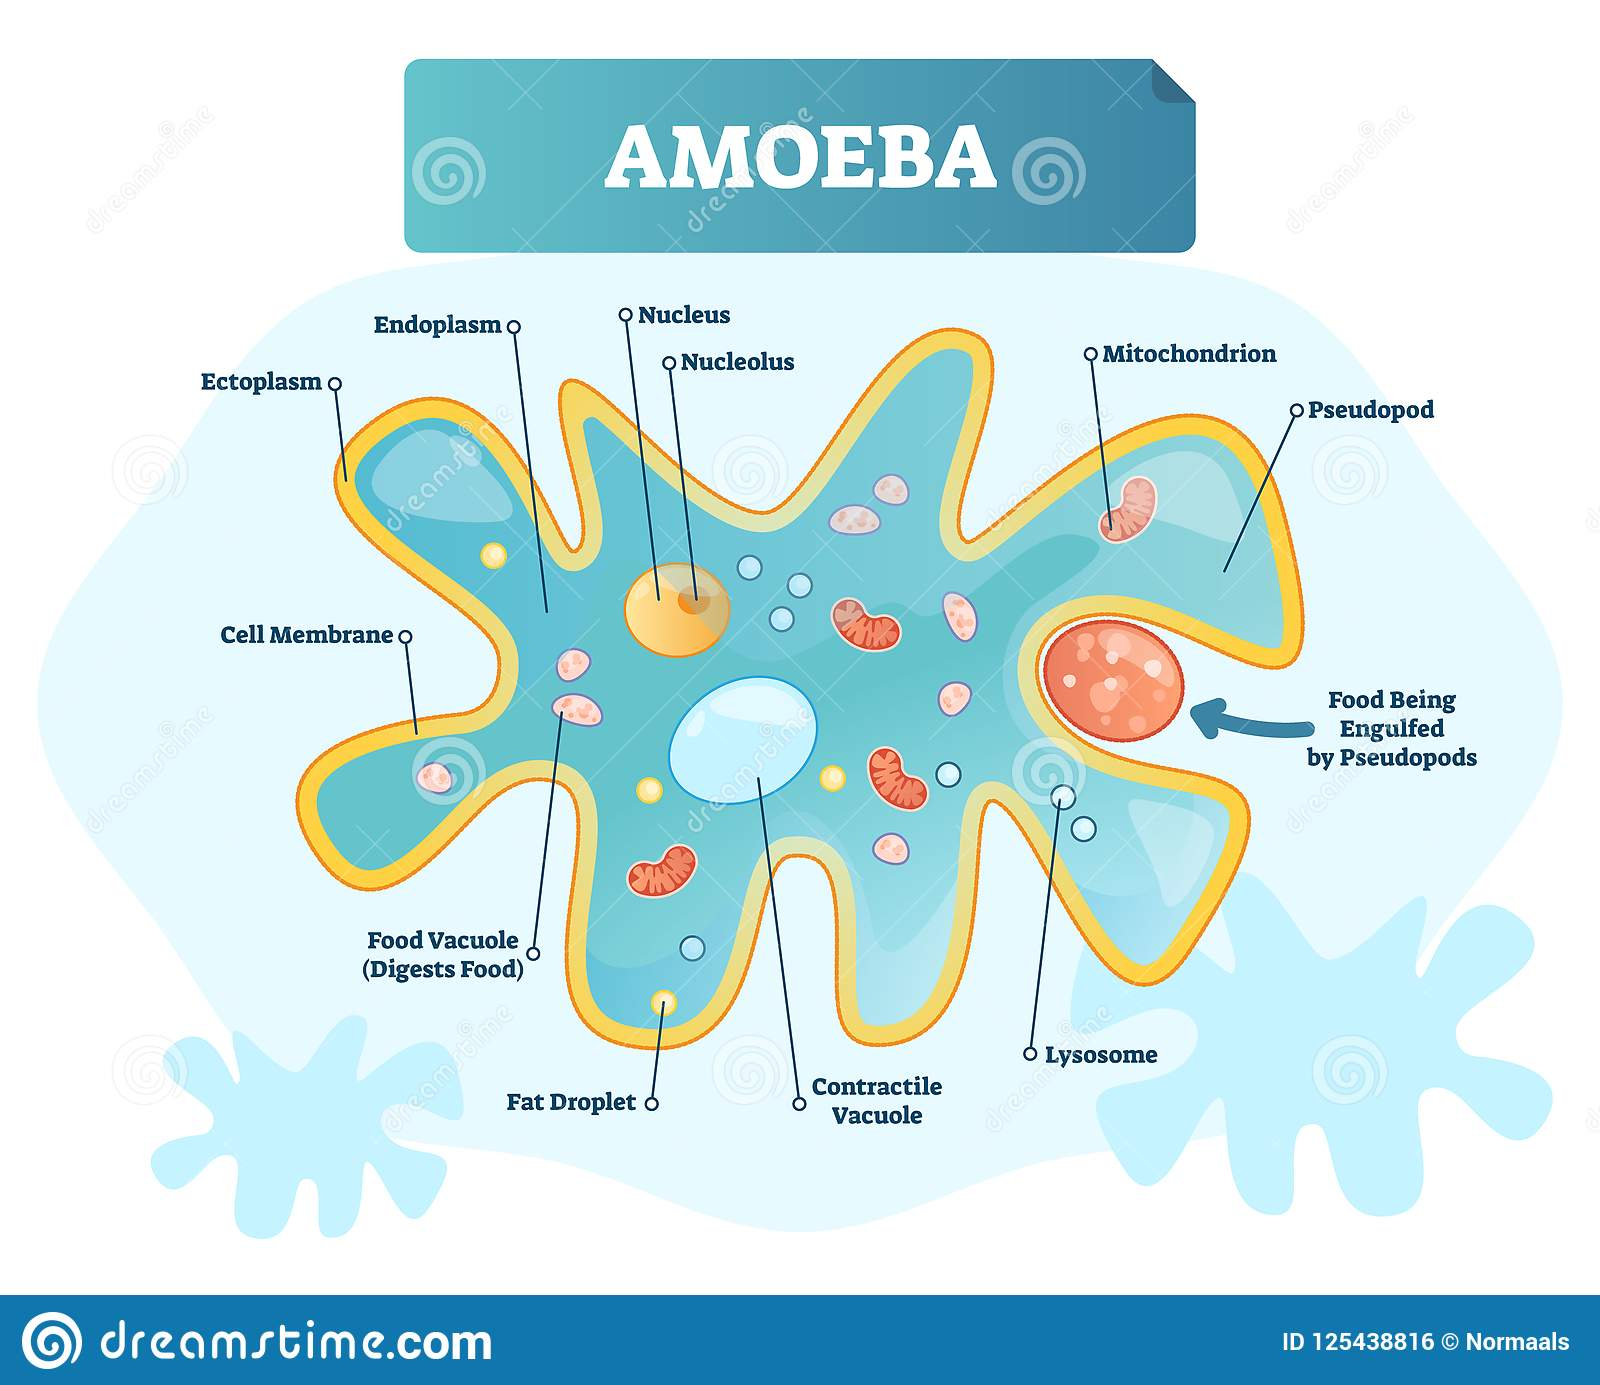 amoeba cell diagram wiring two way dimmer switch cartoons illustrations and vector stock images